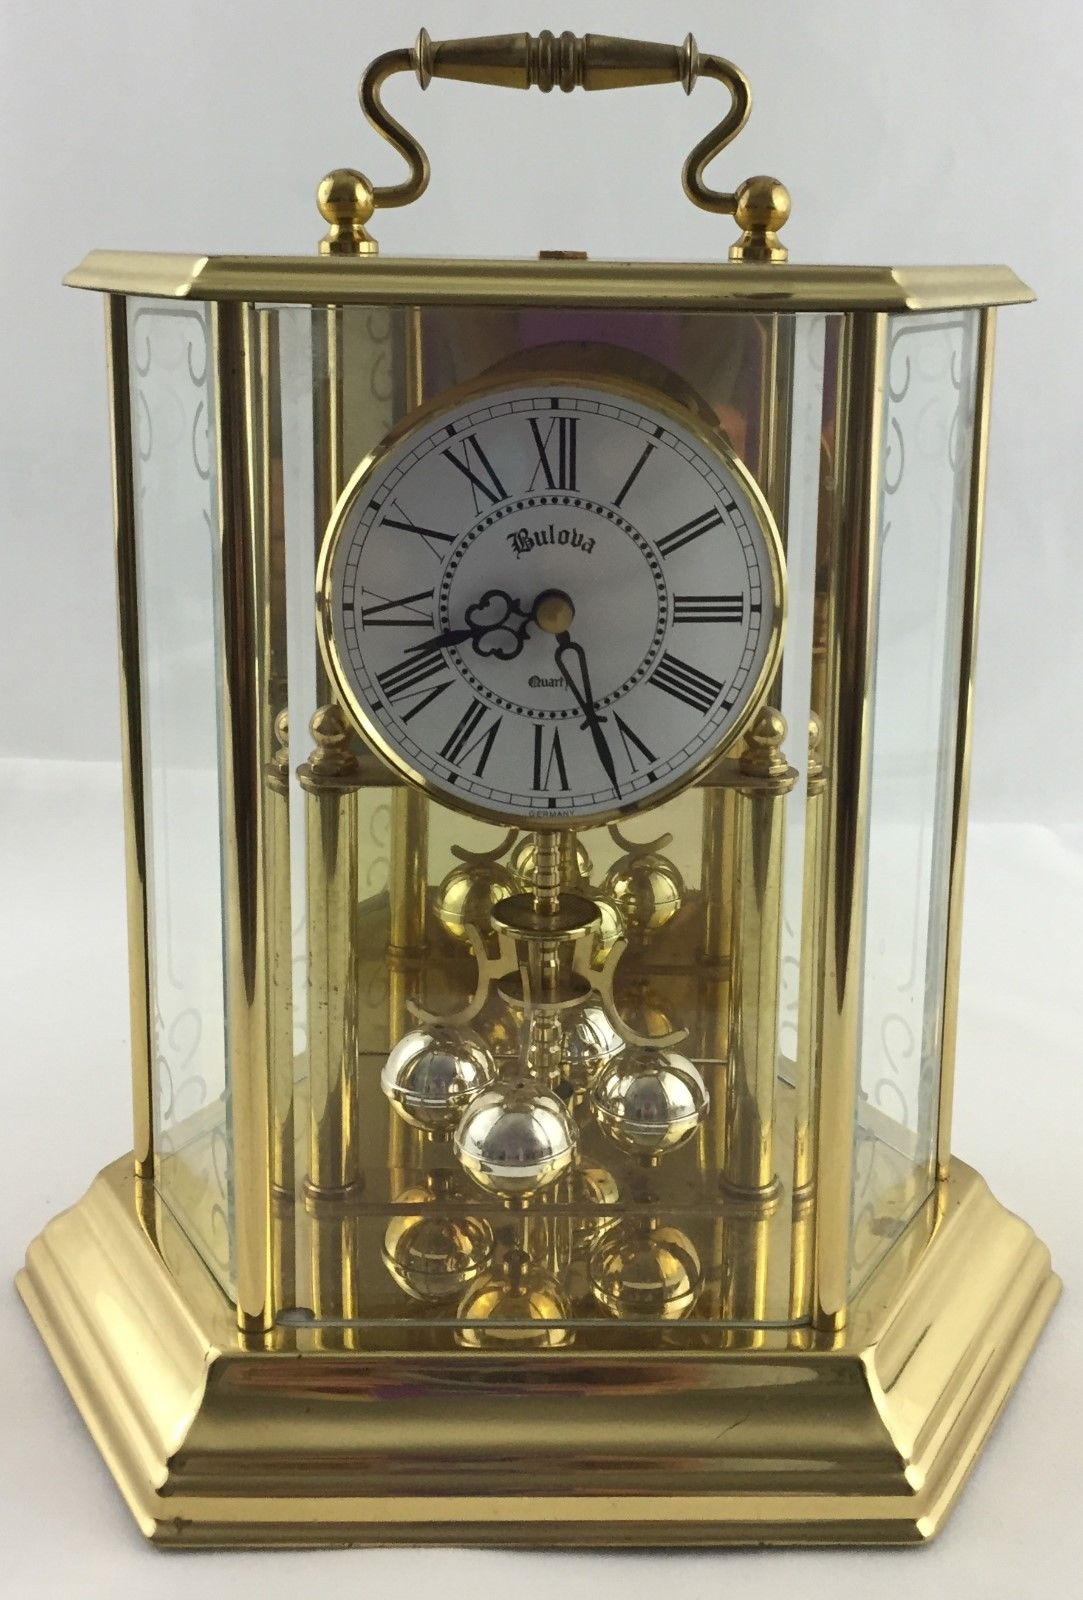 Bulova Grandfather Clock | Bulova Chime Wall Clock | Bulova Mantel Clock